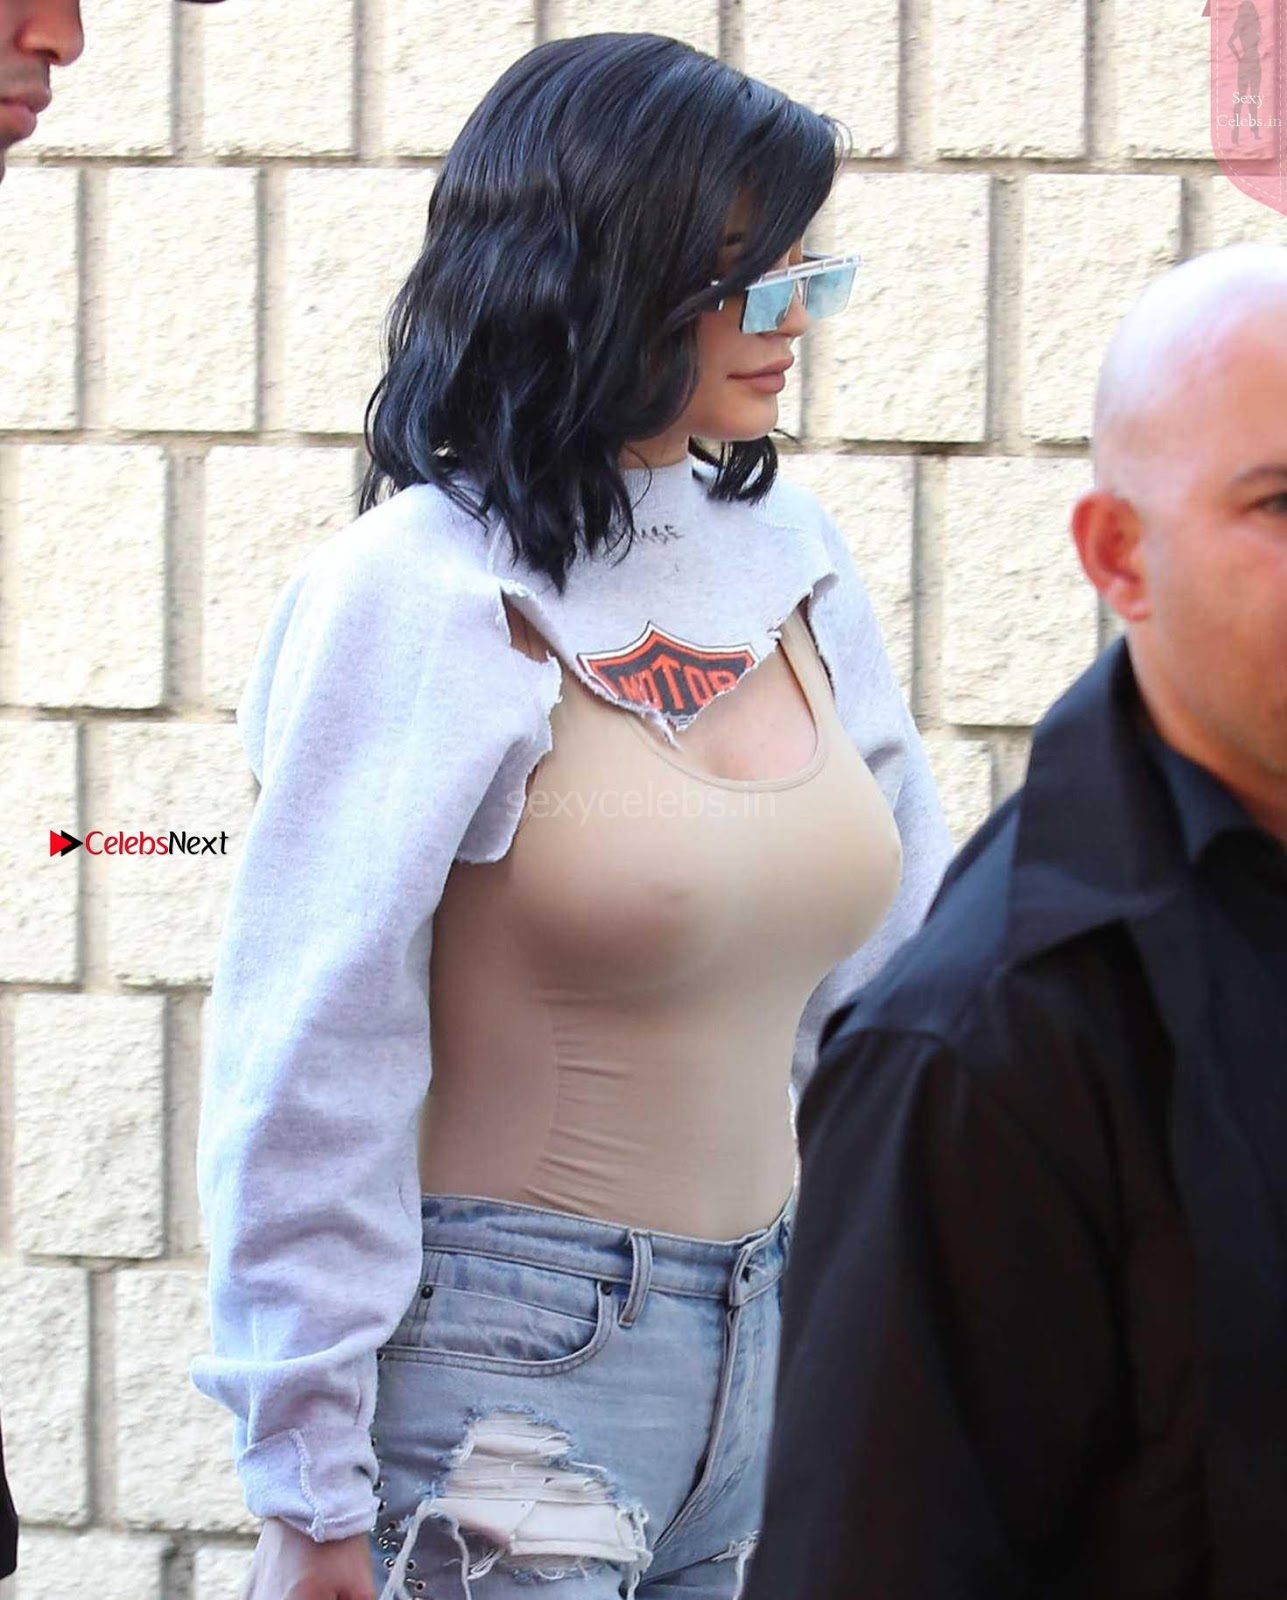 Kylie Jenner wearing a bra less nude coloured tank top exposing her huge boobs and nipples WOW